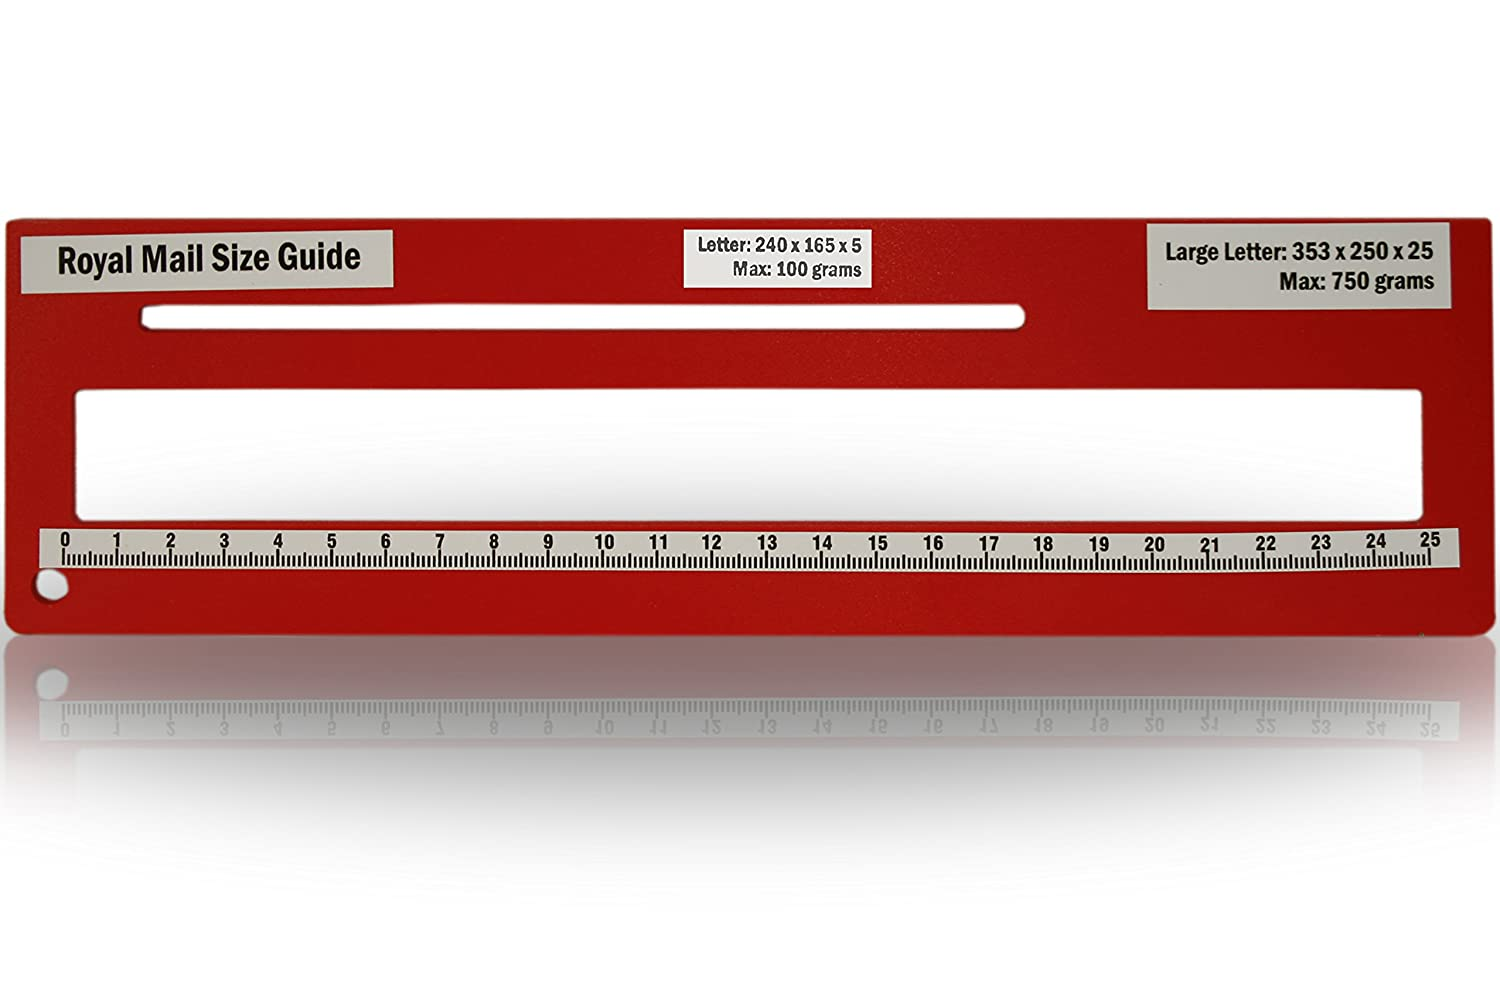 Royal Mail PPI Letter Size Guide Ruler Post Office Postal Price Postage in Green.